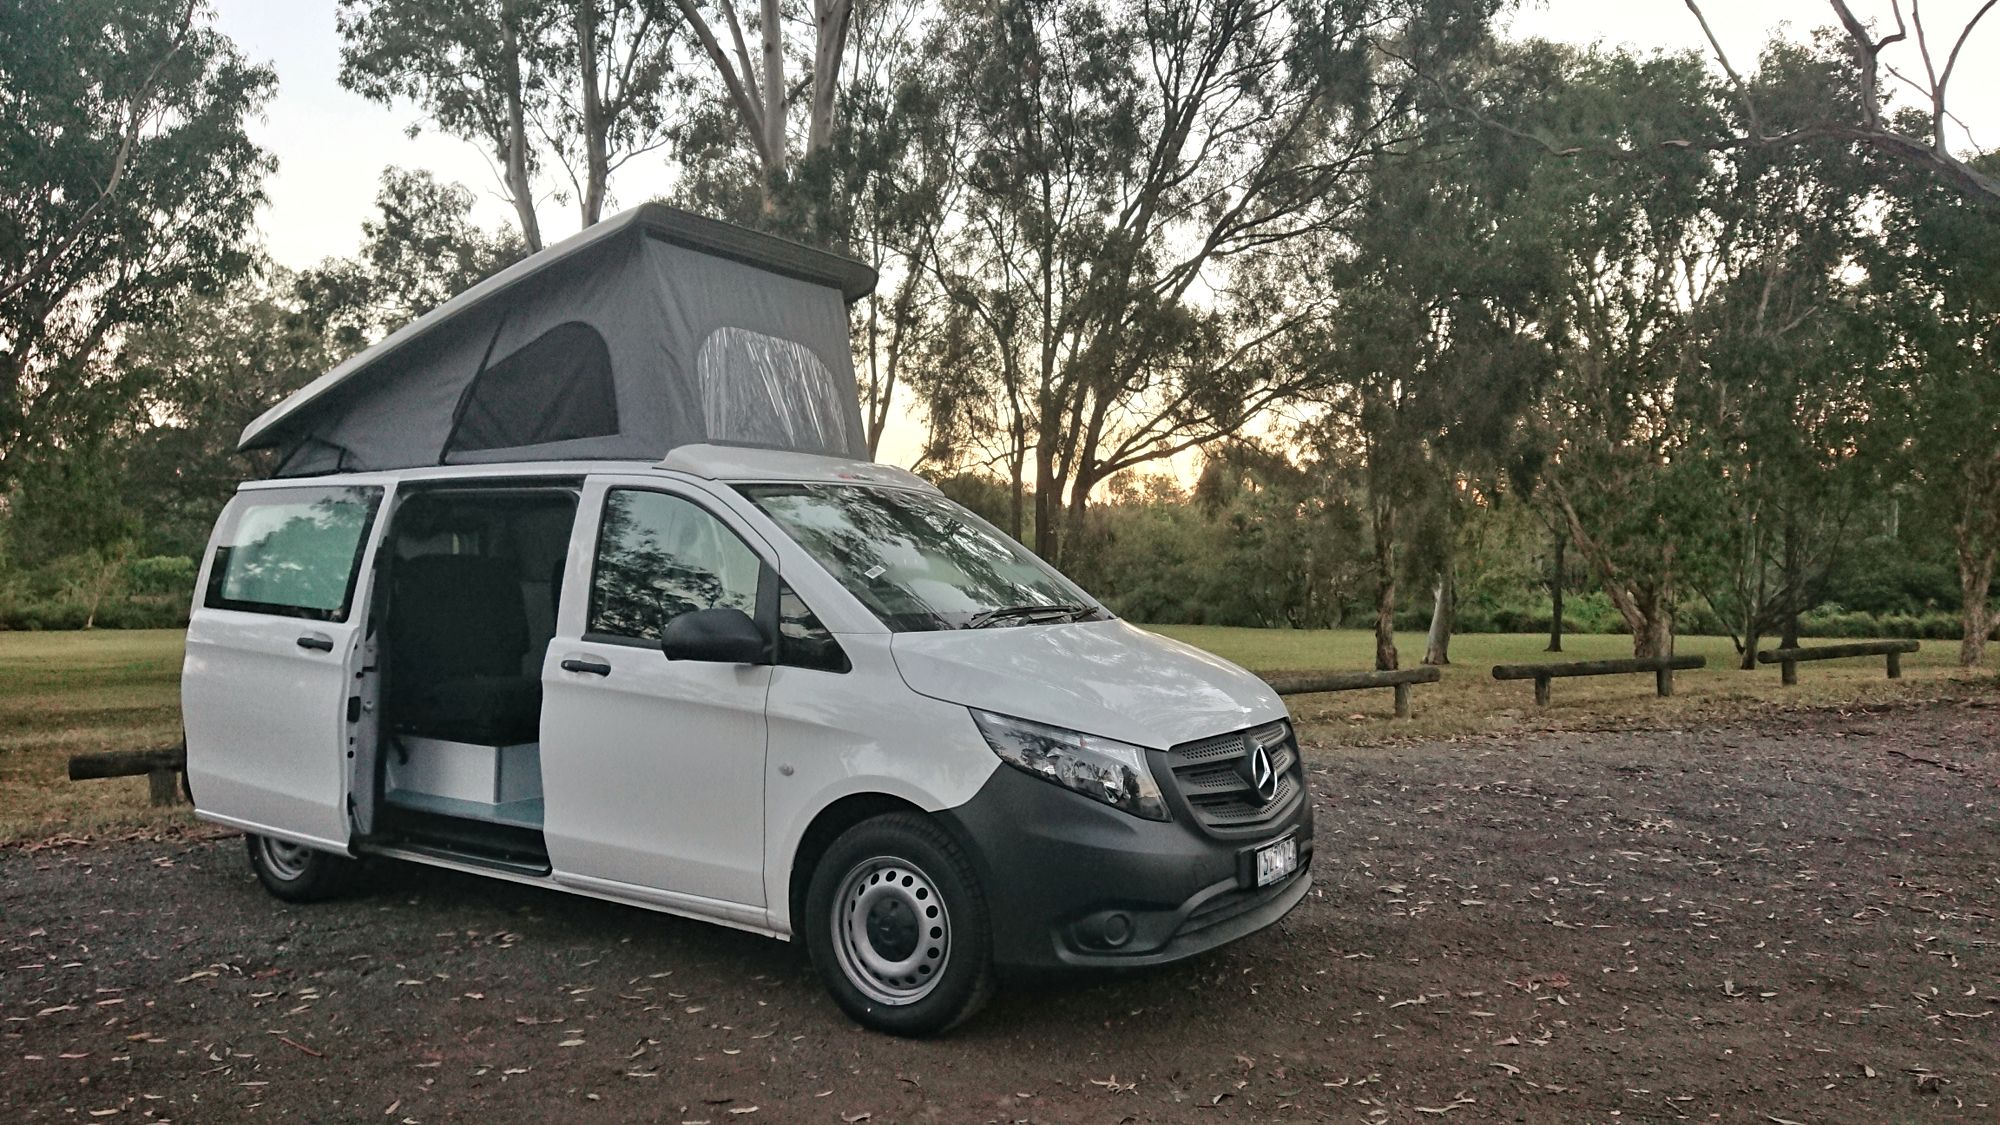 Mercedes Vito Campervan conversion - Australia